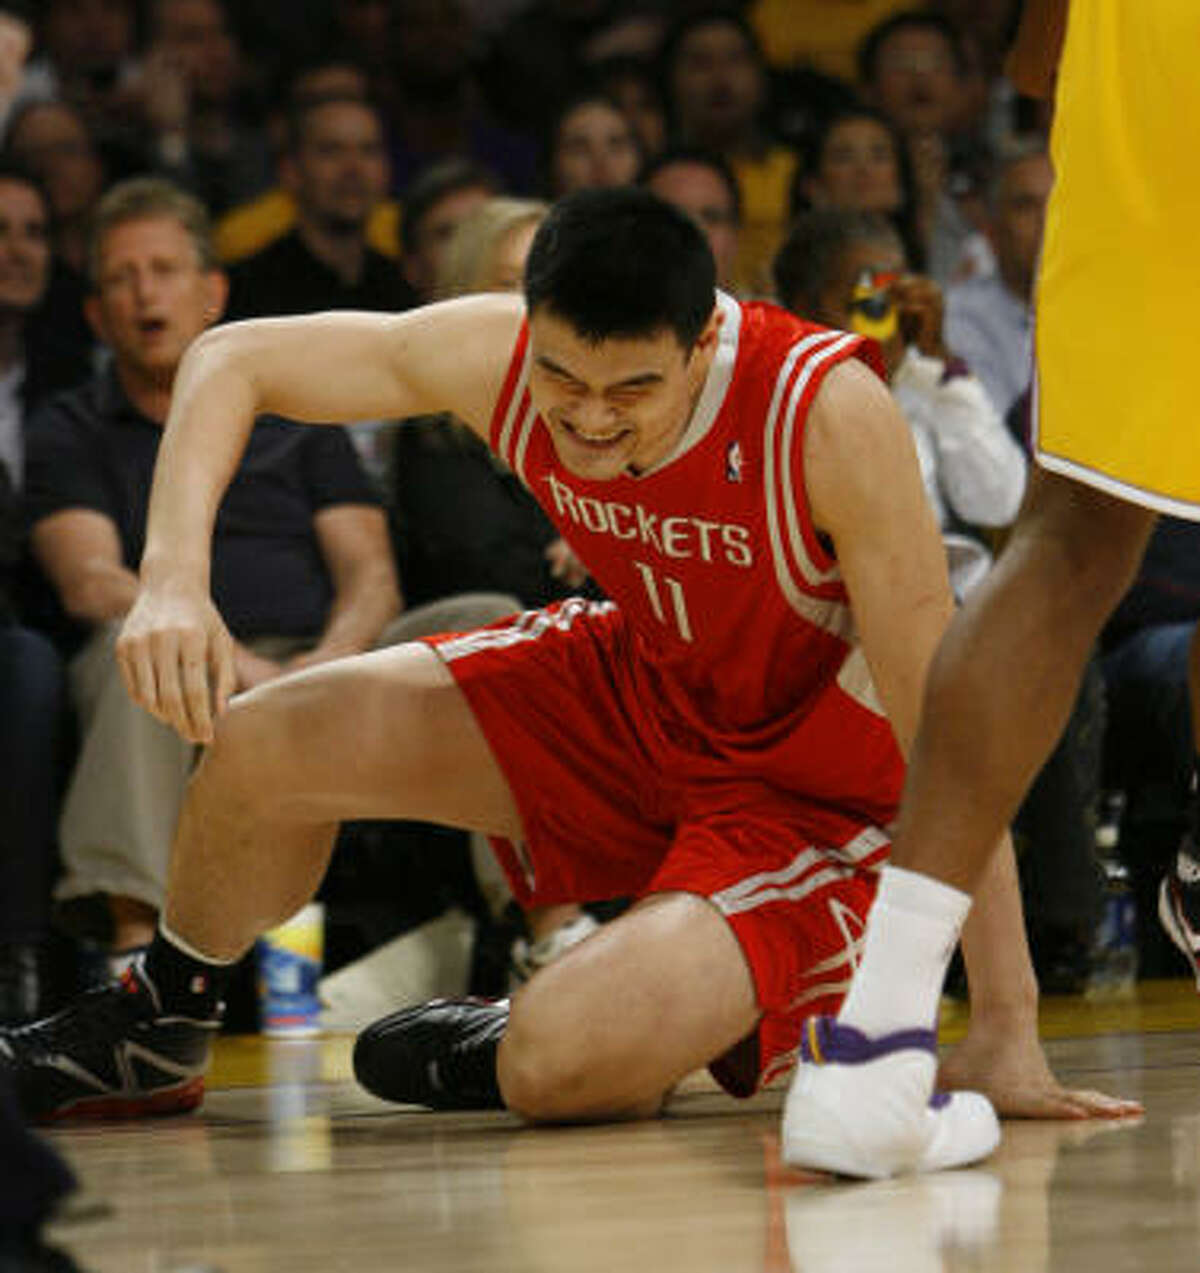 Rockets center Yao Ming (11) winces after being knocked down by the Lakers in the first quarter of Game 1 at Staples Center in Los Angeles. It wasn't the first time Yao had to get up after being knocked down.